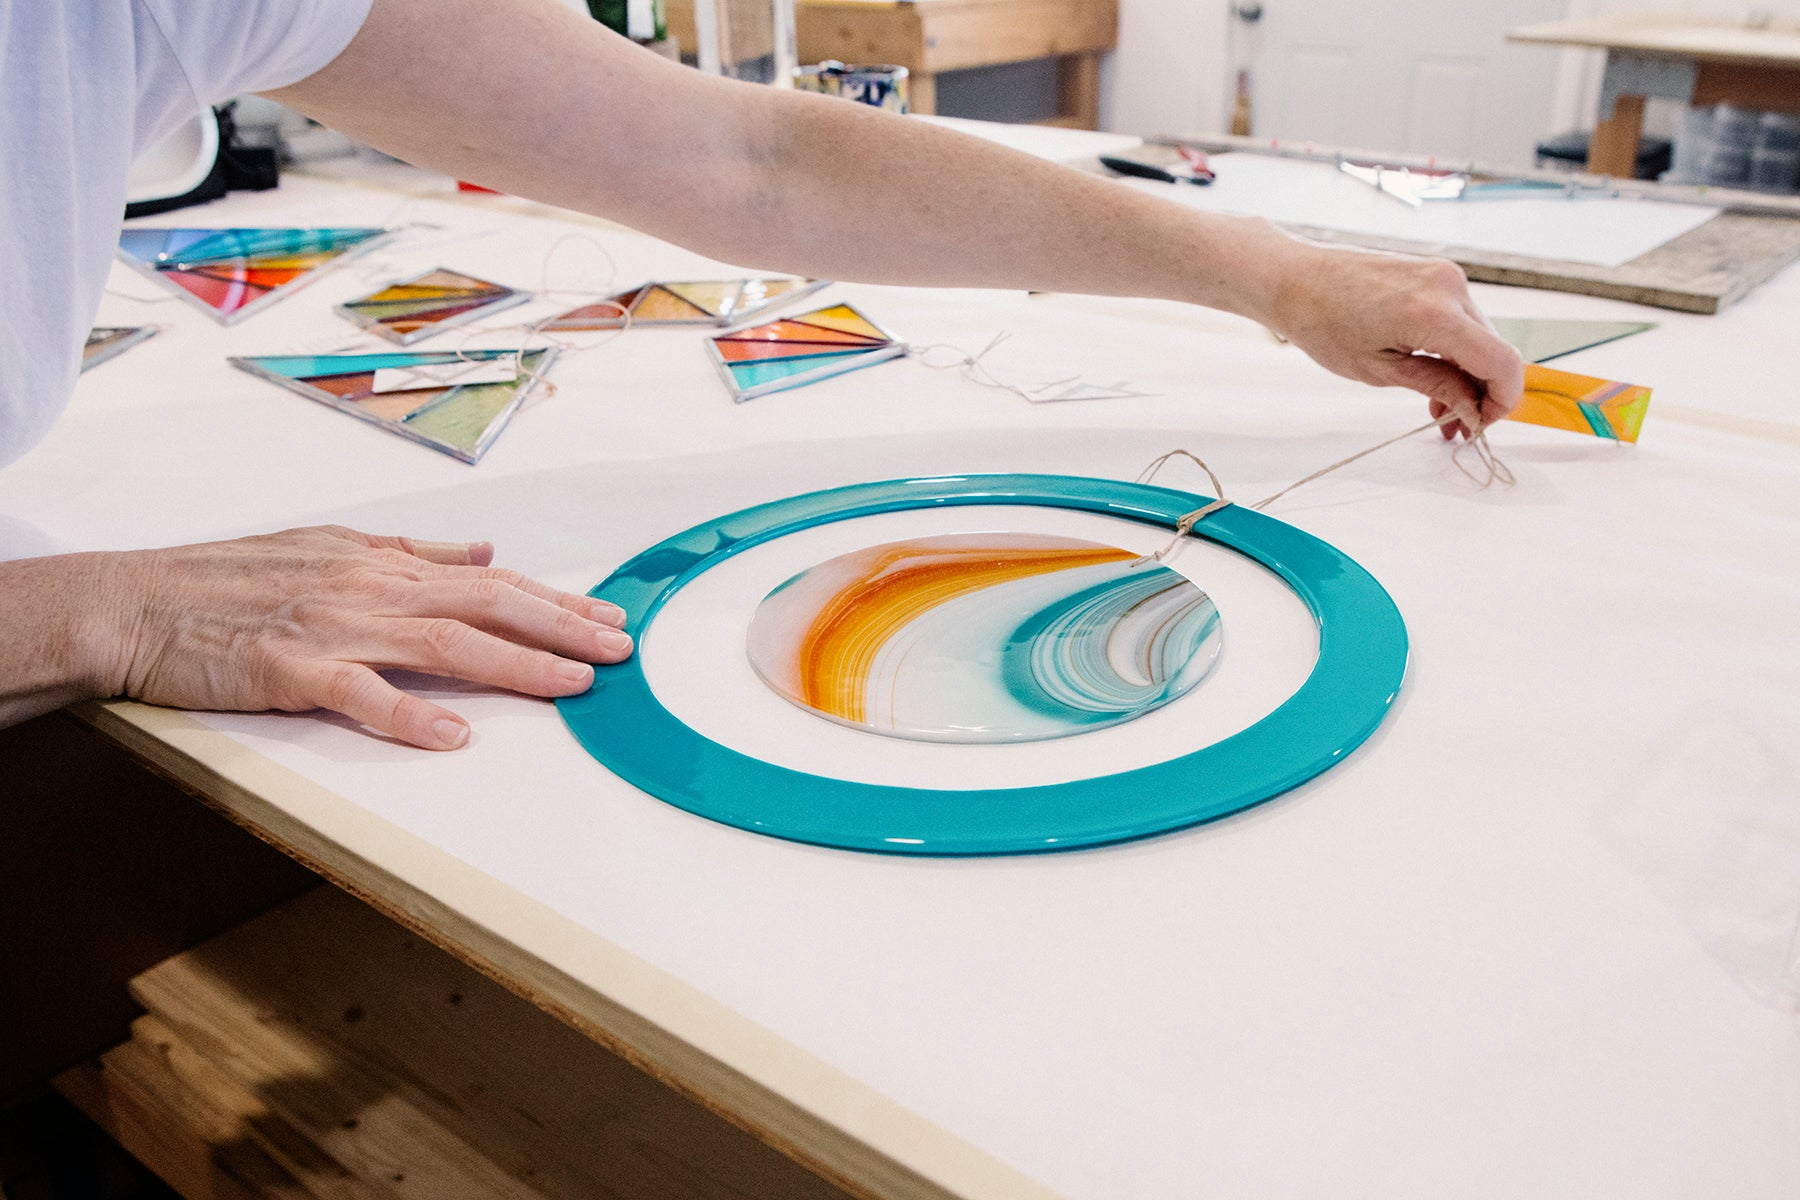 Detail photograph of Debbie Bean laying down a round, pale blue piece of stained glass with a string on top, in her studio.